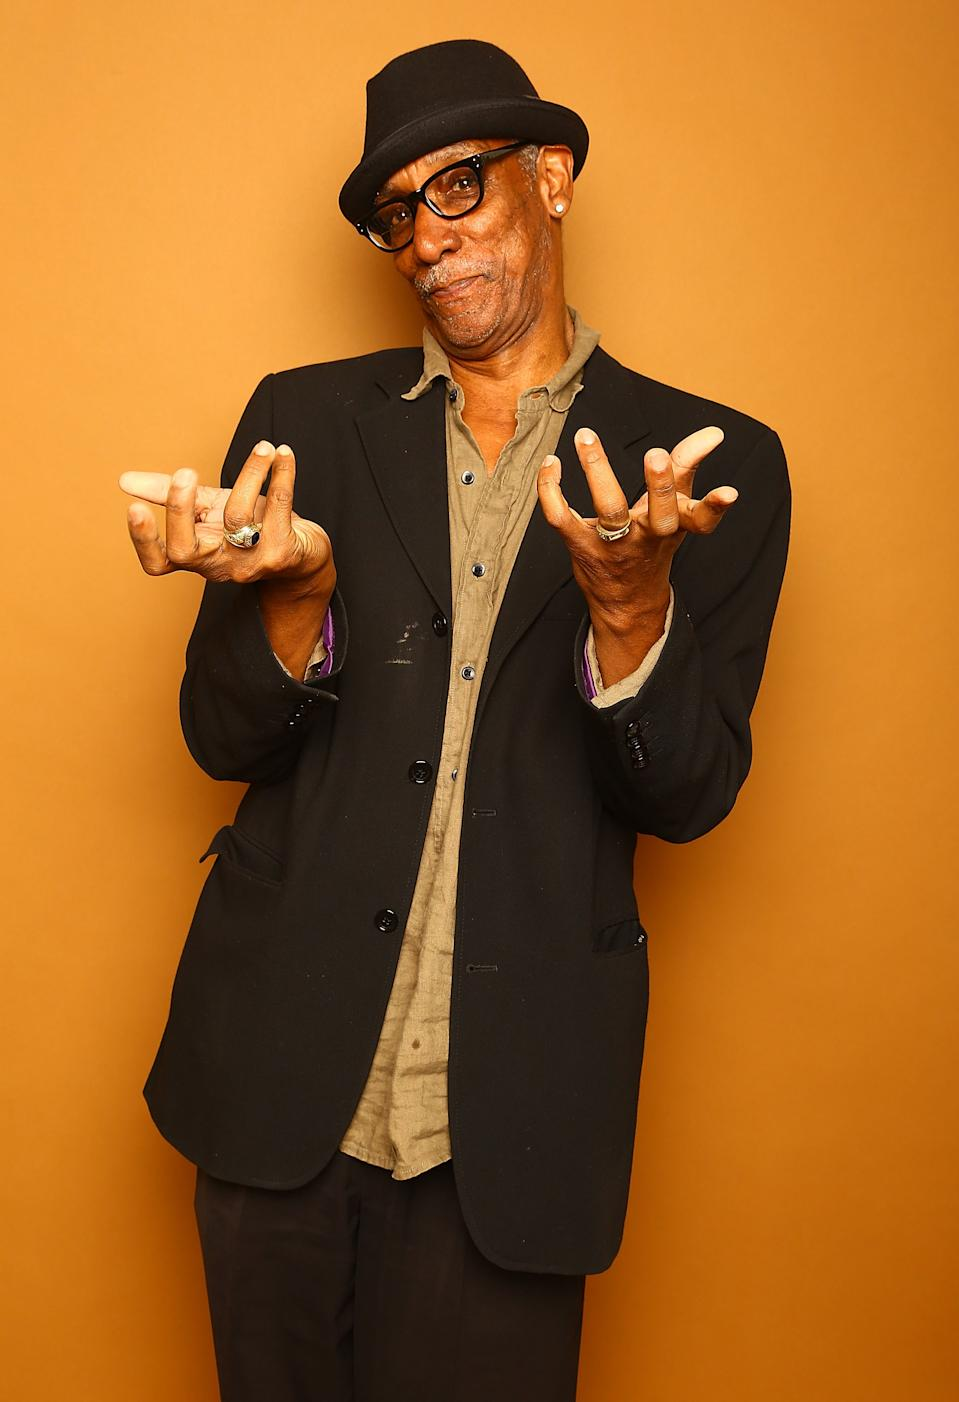 NEW YORK, NY - JUNE 21: Actor Thomas Jefferson Byrd poses for a portrait at the 2014 American Black Film Festival at the Metropolitan Pavillion on June 21, 2014 in New York City. (Photo by Astrid Stawiarz/Getty Images)